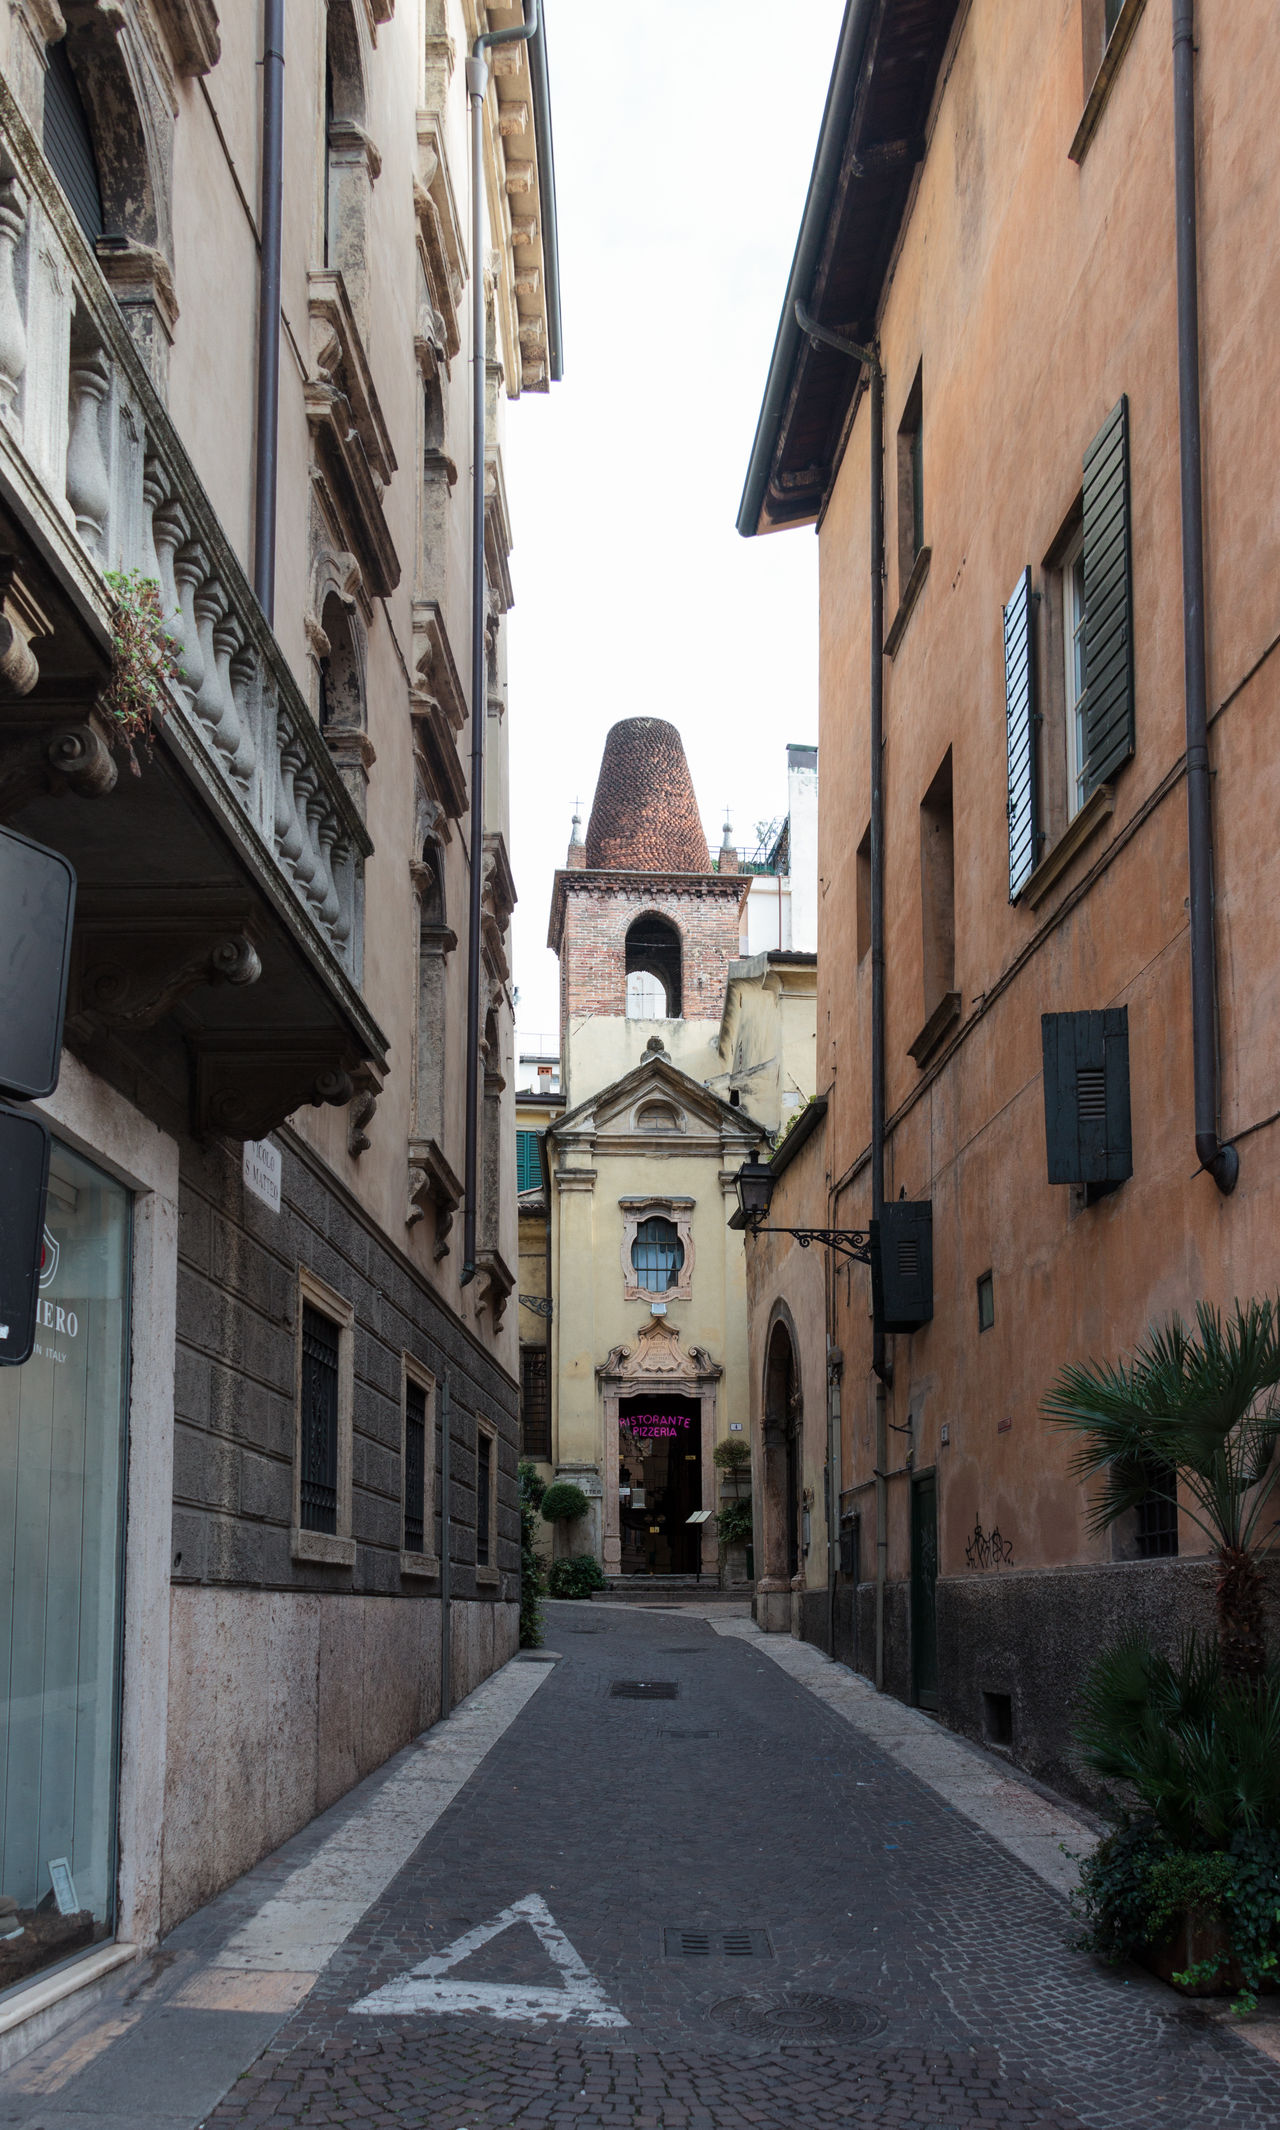 Verona, Italy - September 27, 2015 : Quiet streets of the old city of Verona. Vicolo S. Matteo street corner in Verona, Italy Architecture Architecture Art Building City Culture Day Europe Famous History House Italy Landmark Old Outdoors People Square Street Tourism Town Travel Urban Verona View Walking